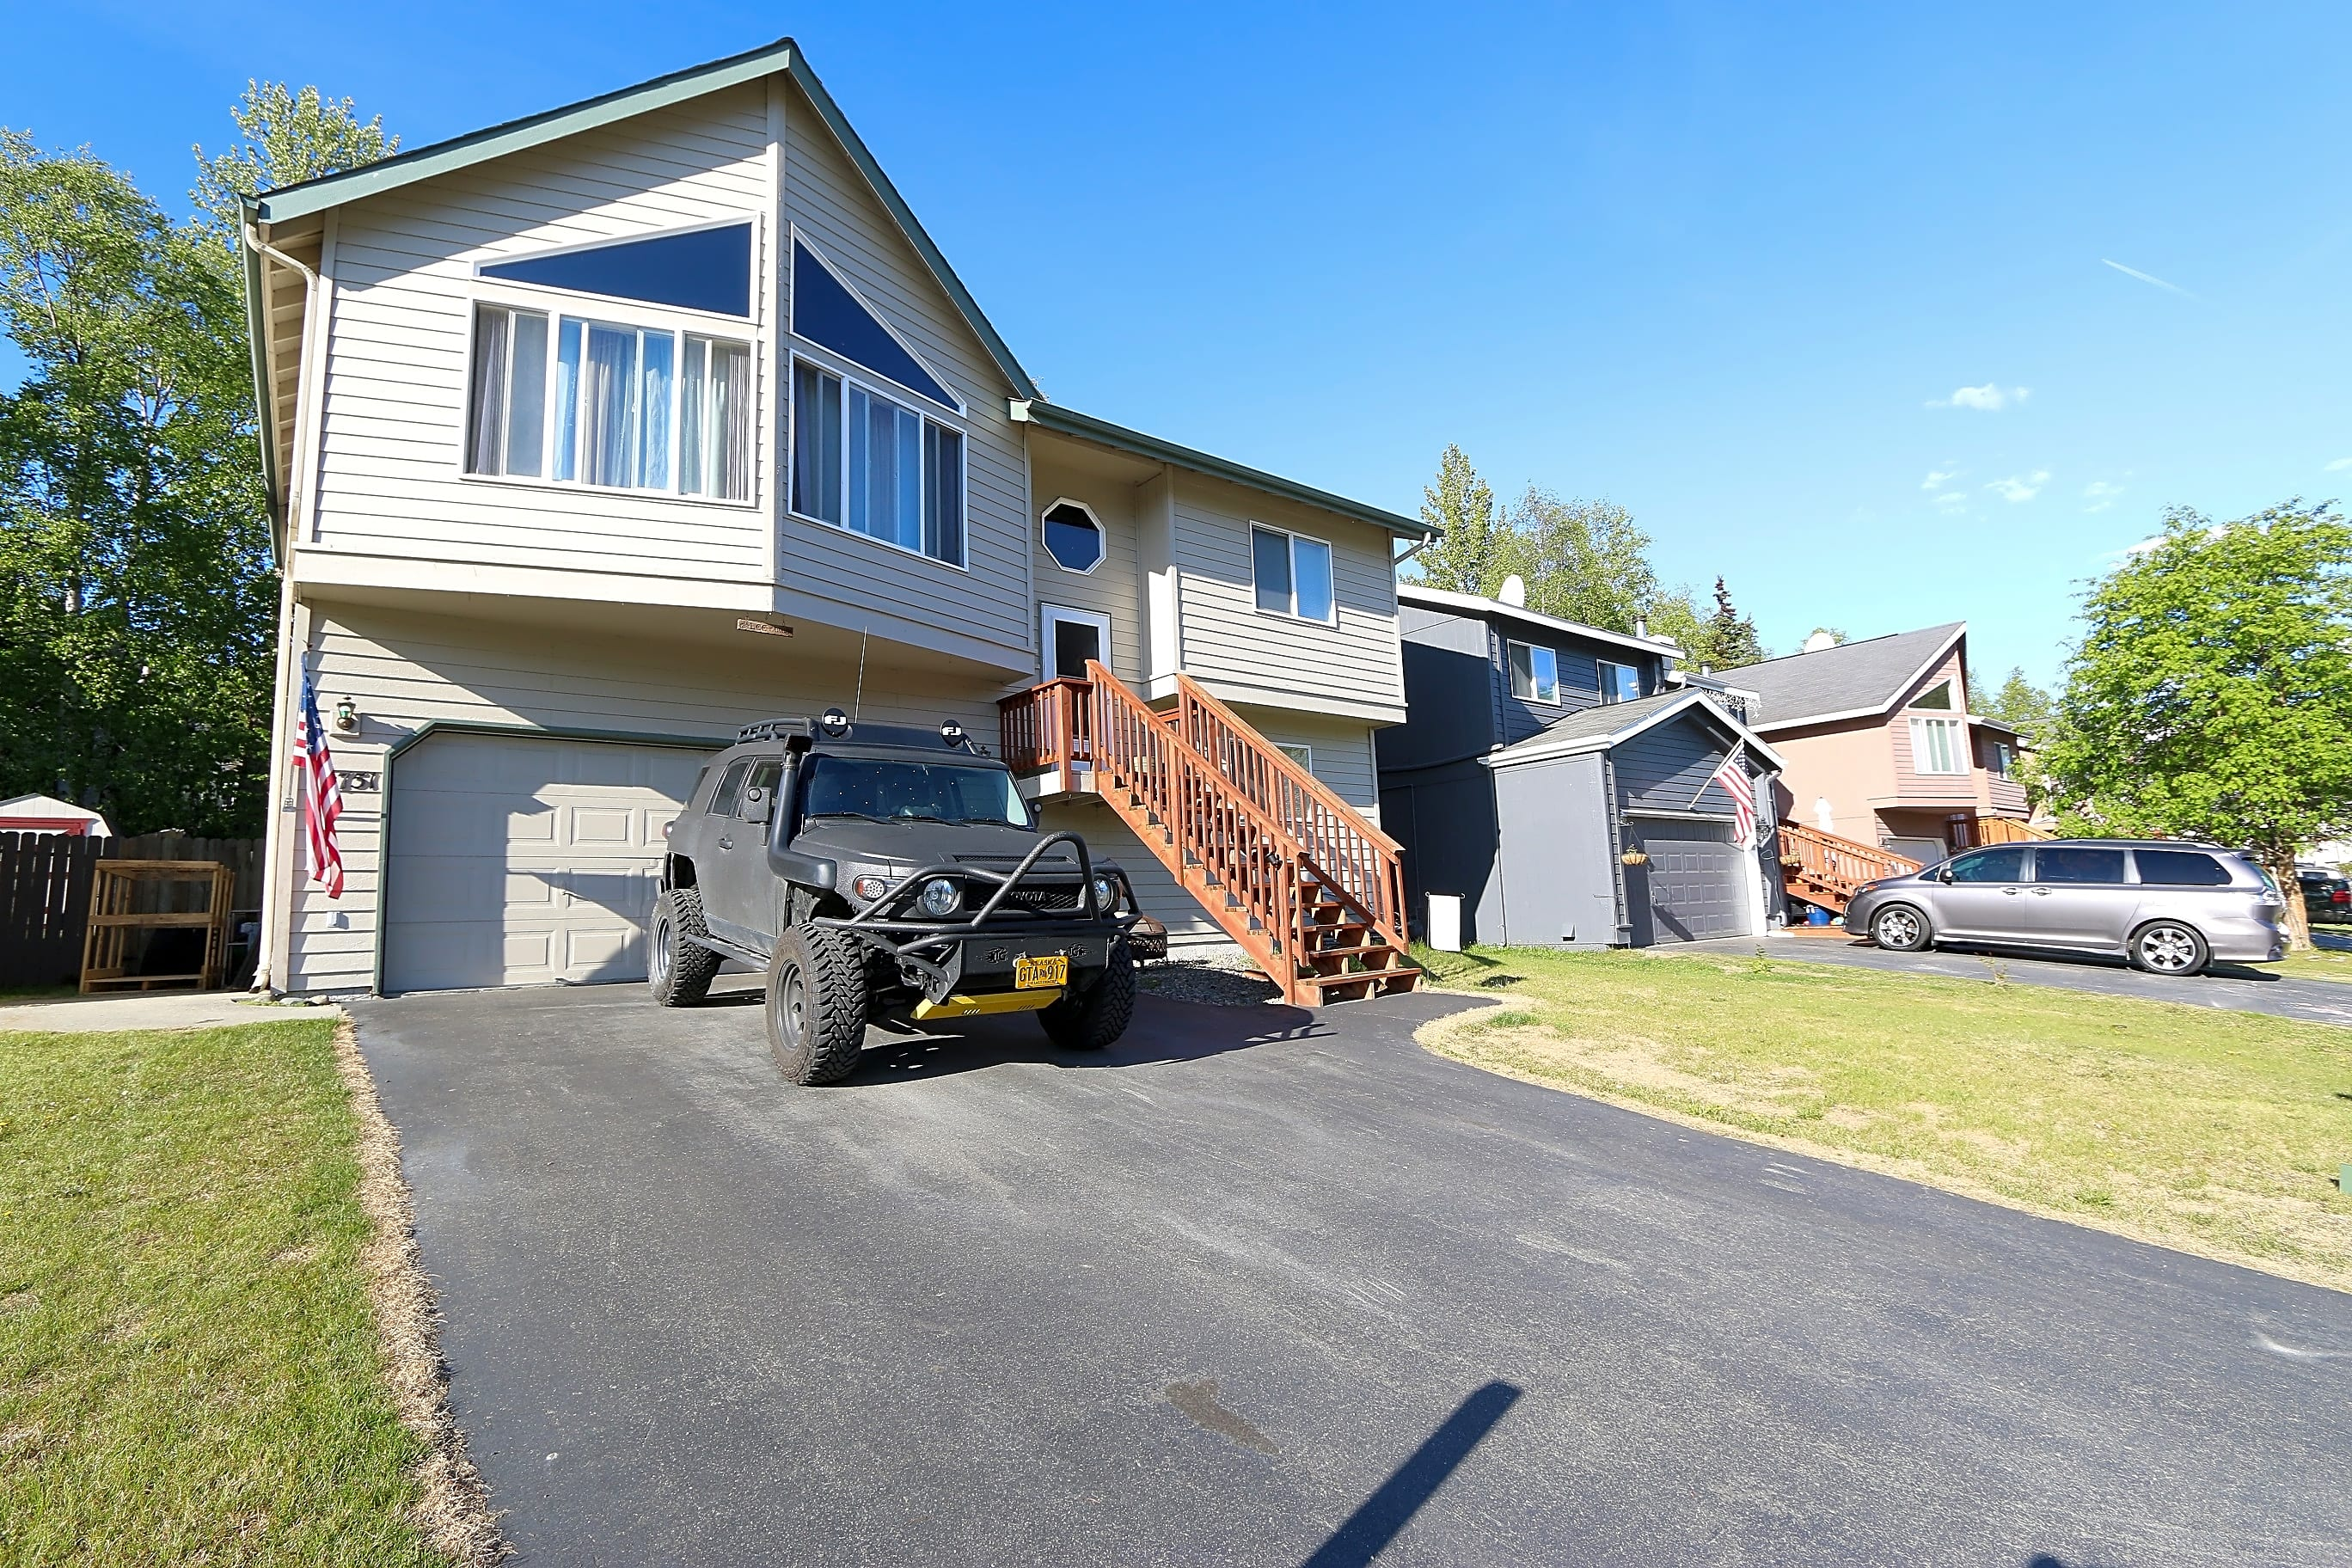 House for Rent in Eagle River